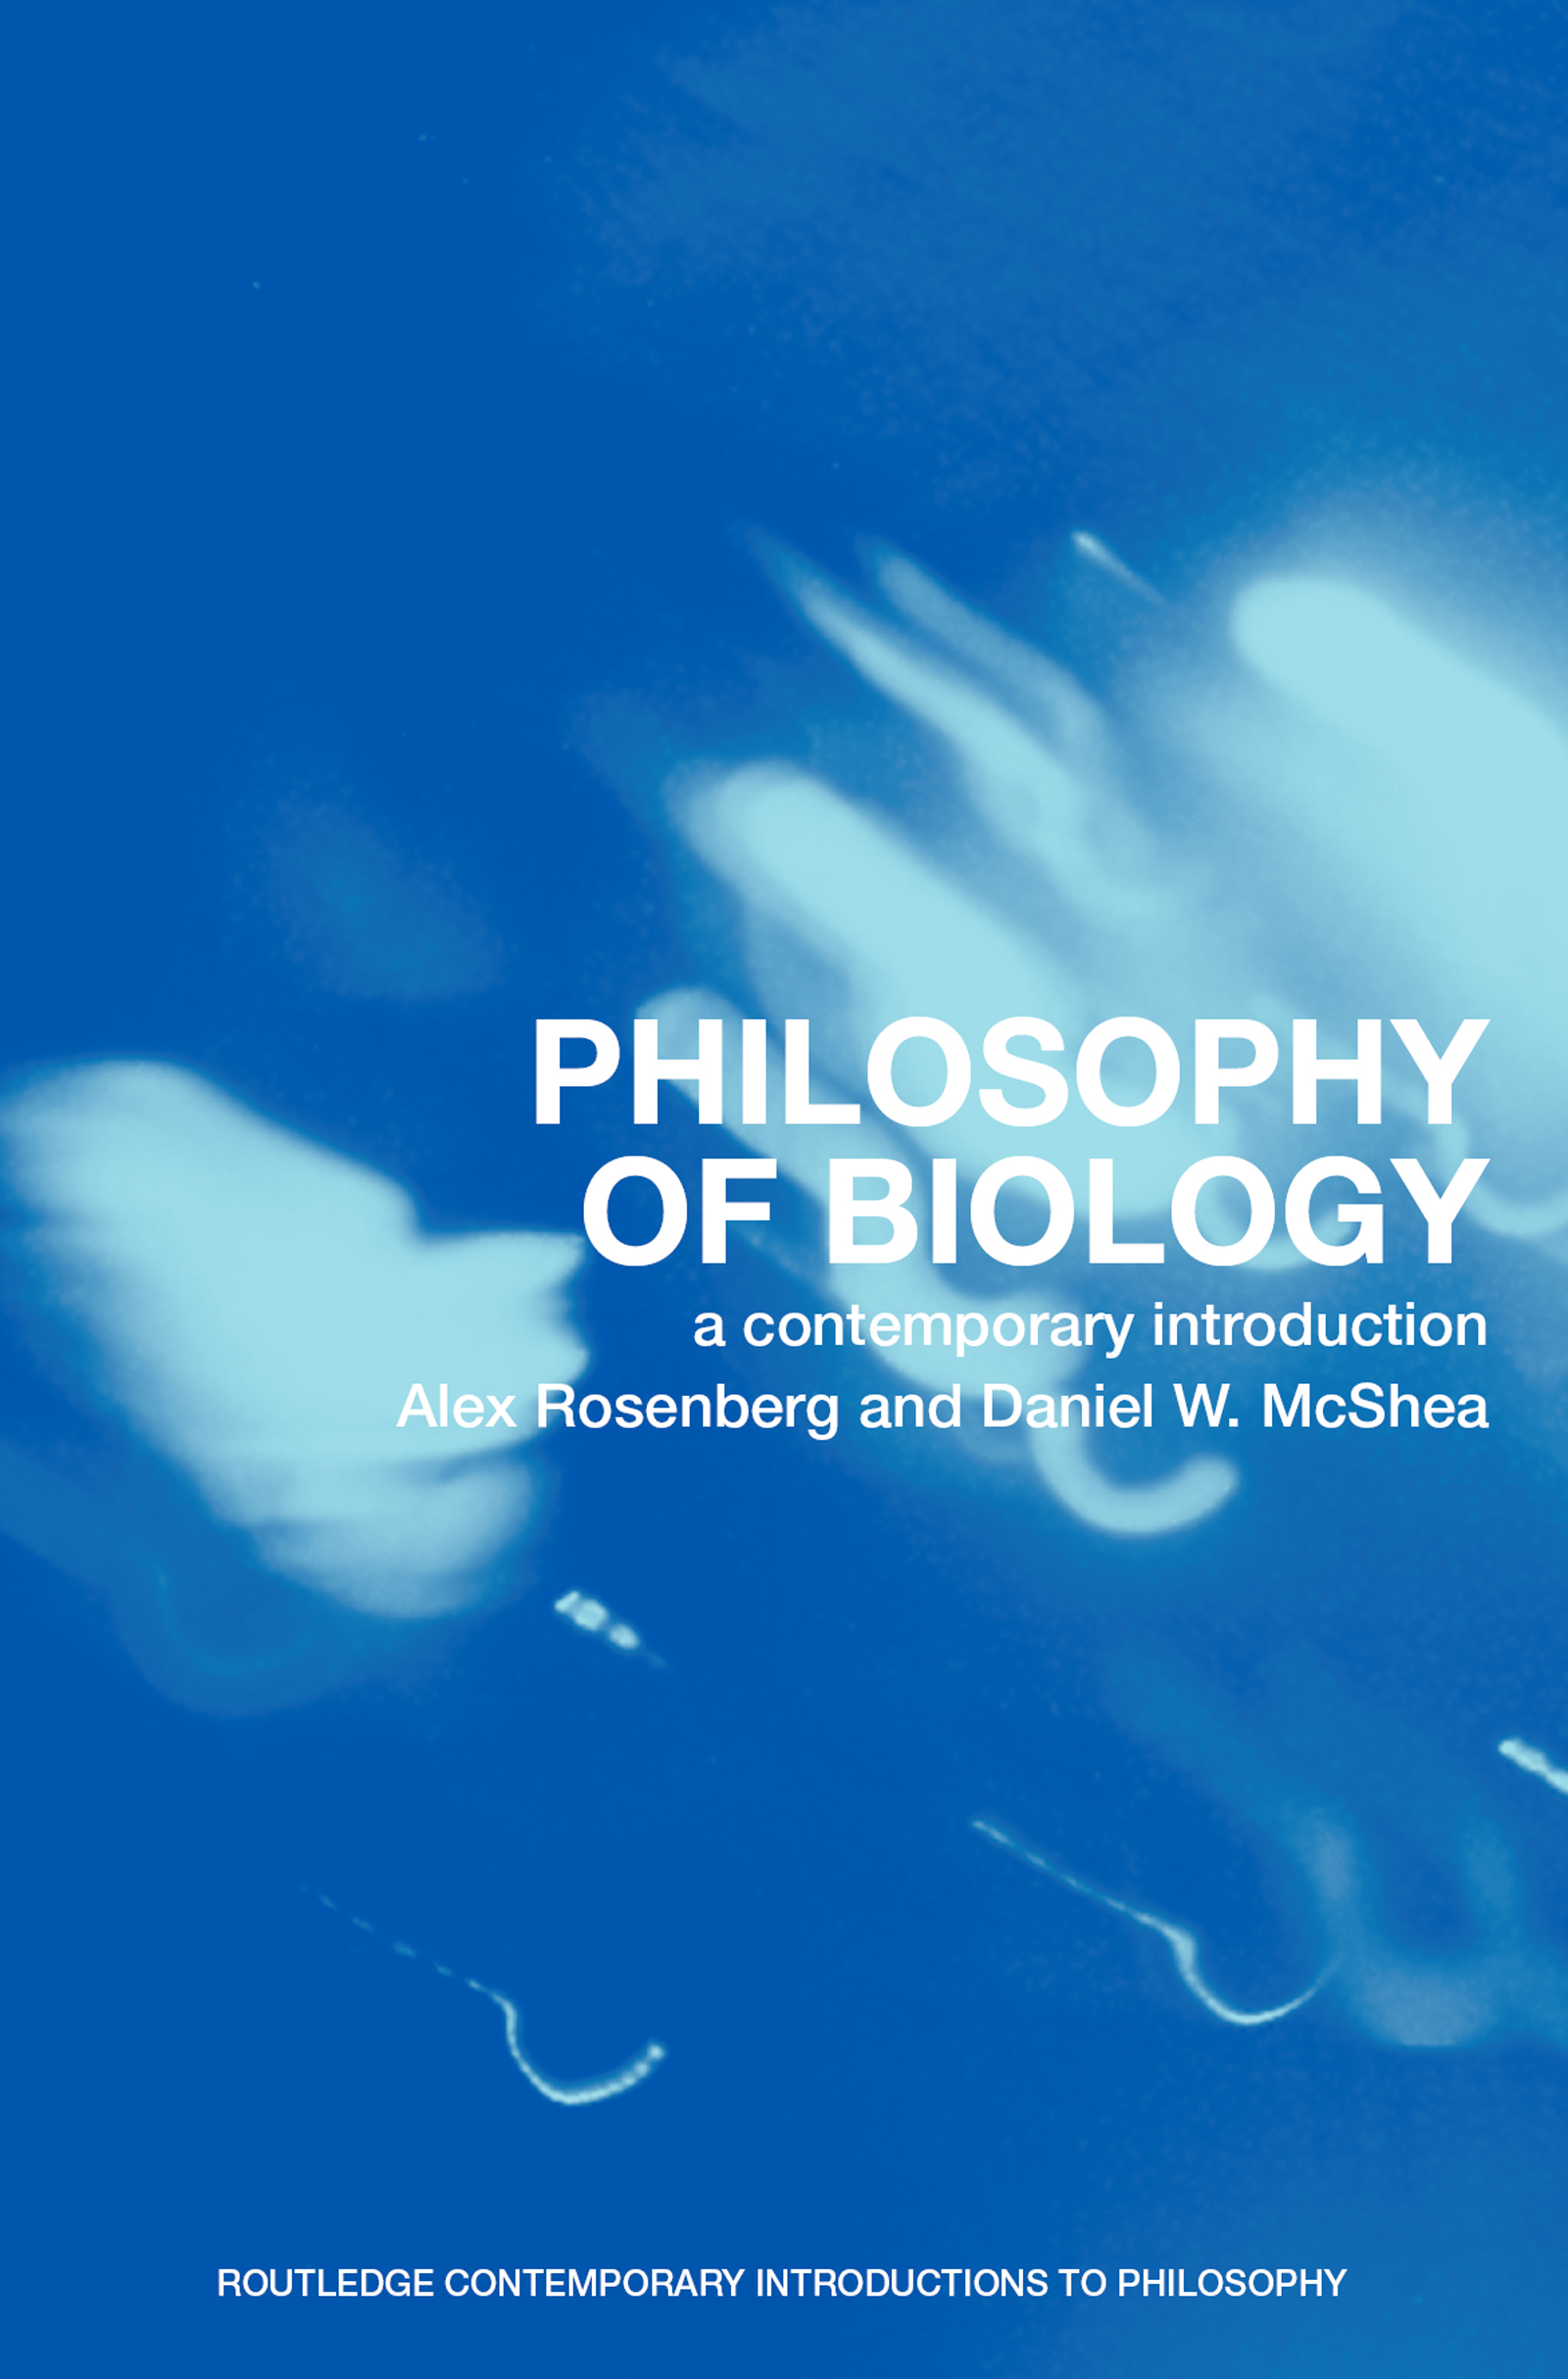 Introduction: What is the philosophy of biology?